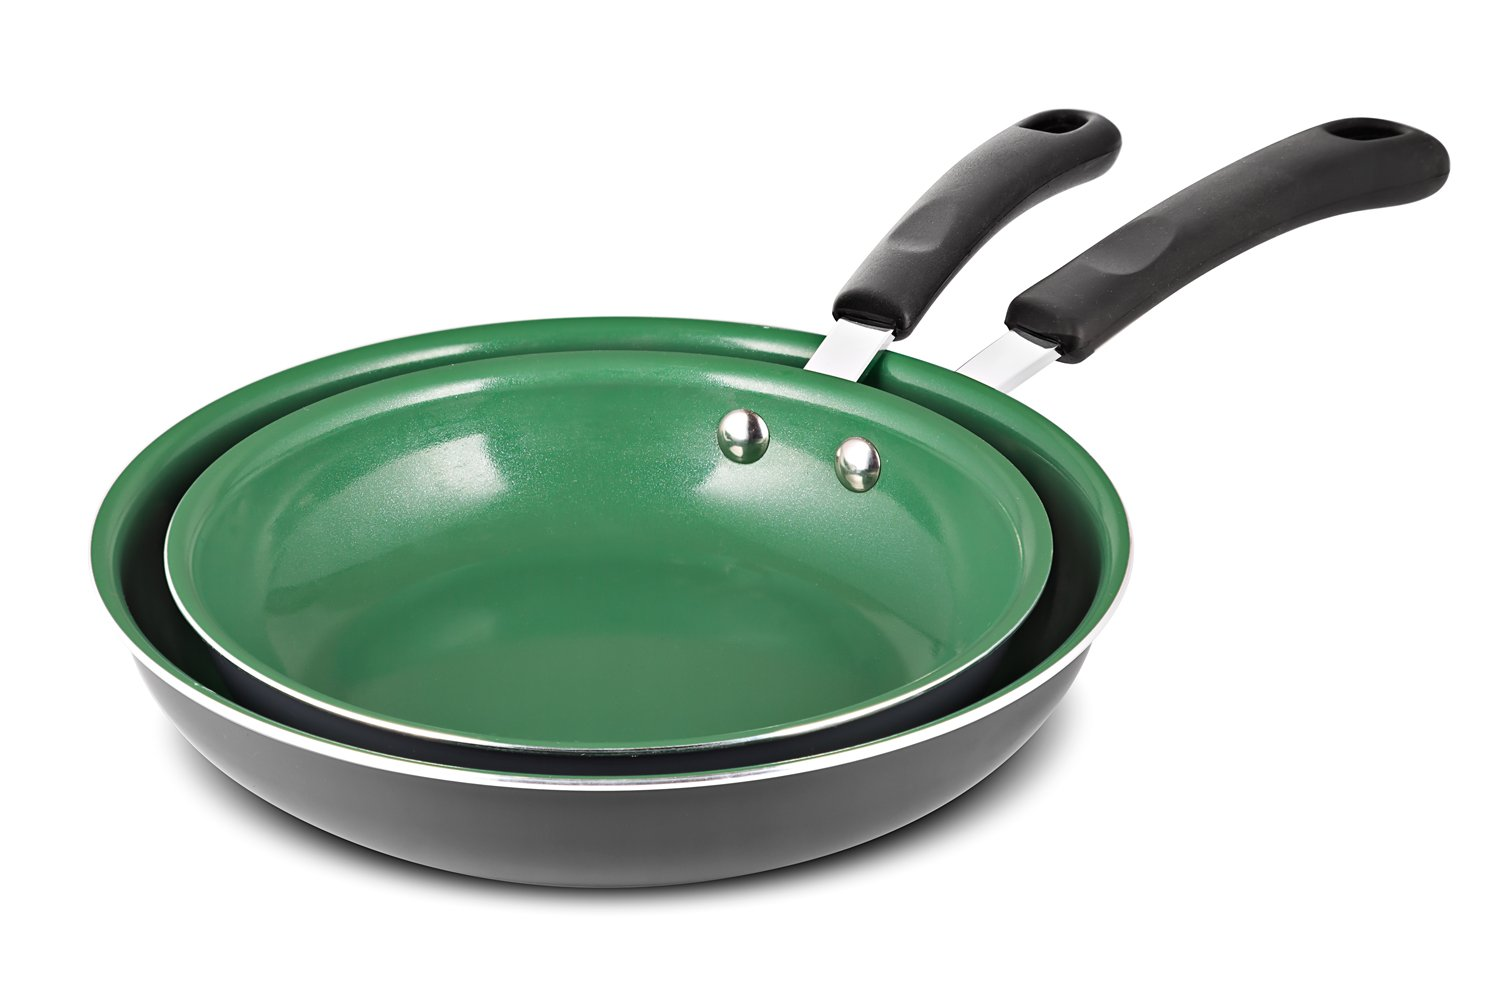 Supreme Frying Pans 10 and 8 inch Cookware Set Chefs Star Frying Pan Non stick Ceramic Omelette Cooking Set Green Even Heat Saute Pan//Skillet Set